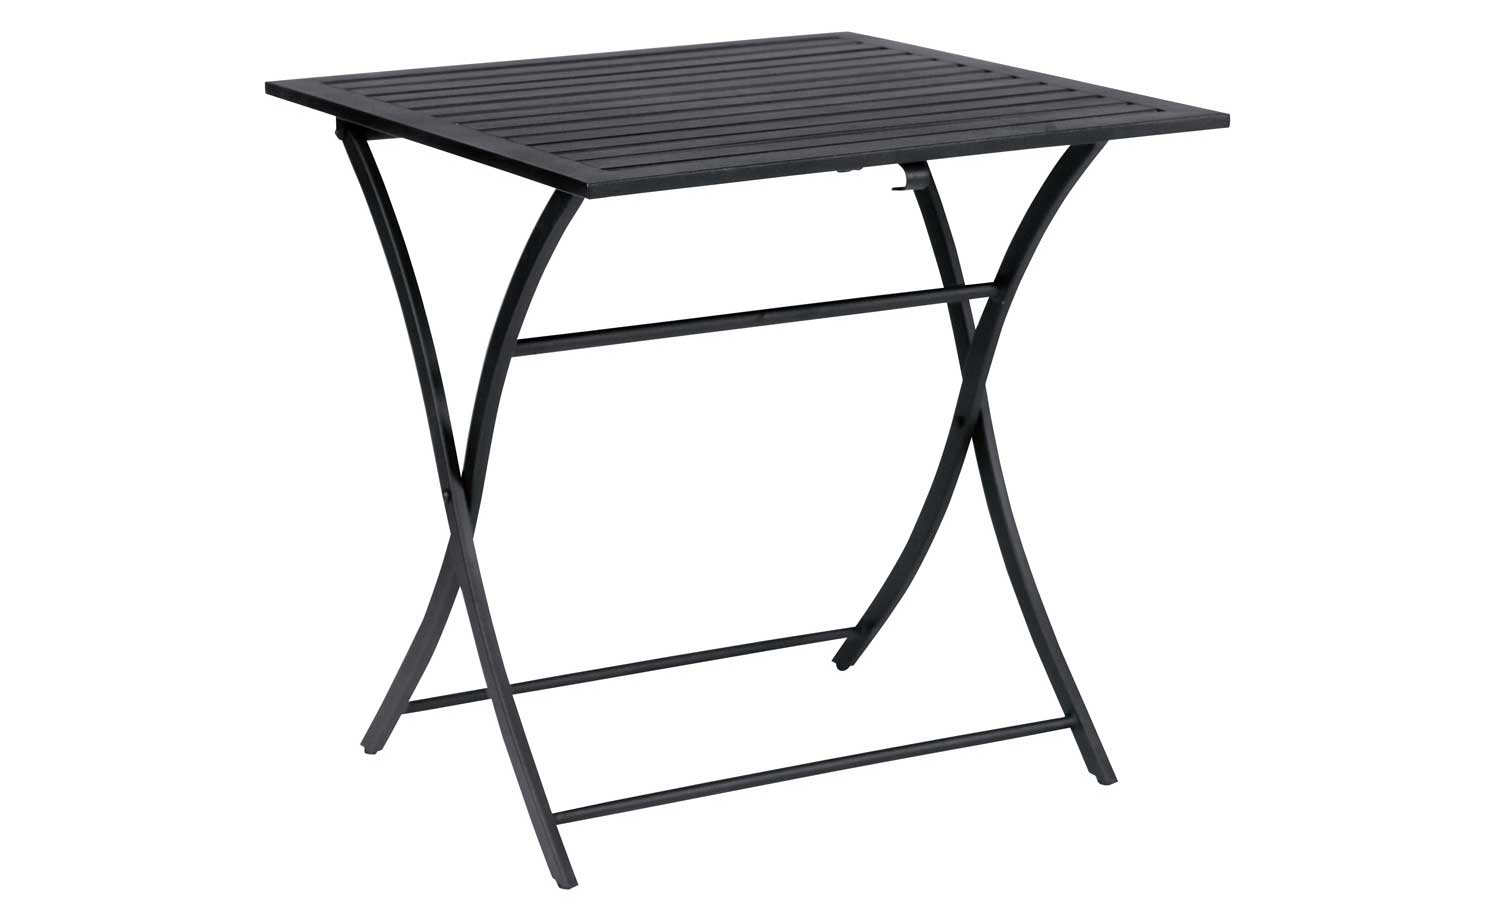 Woodard Avery Black Wrought Iron Square Folding Tables